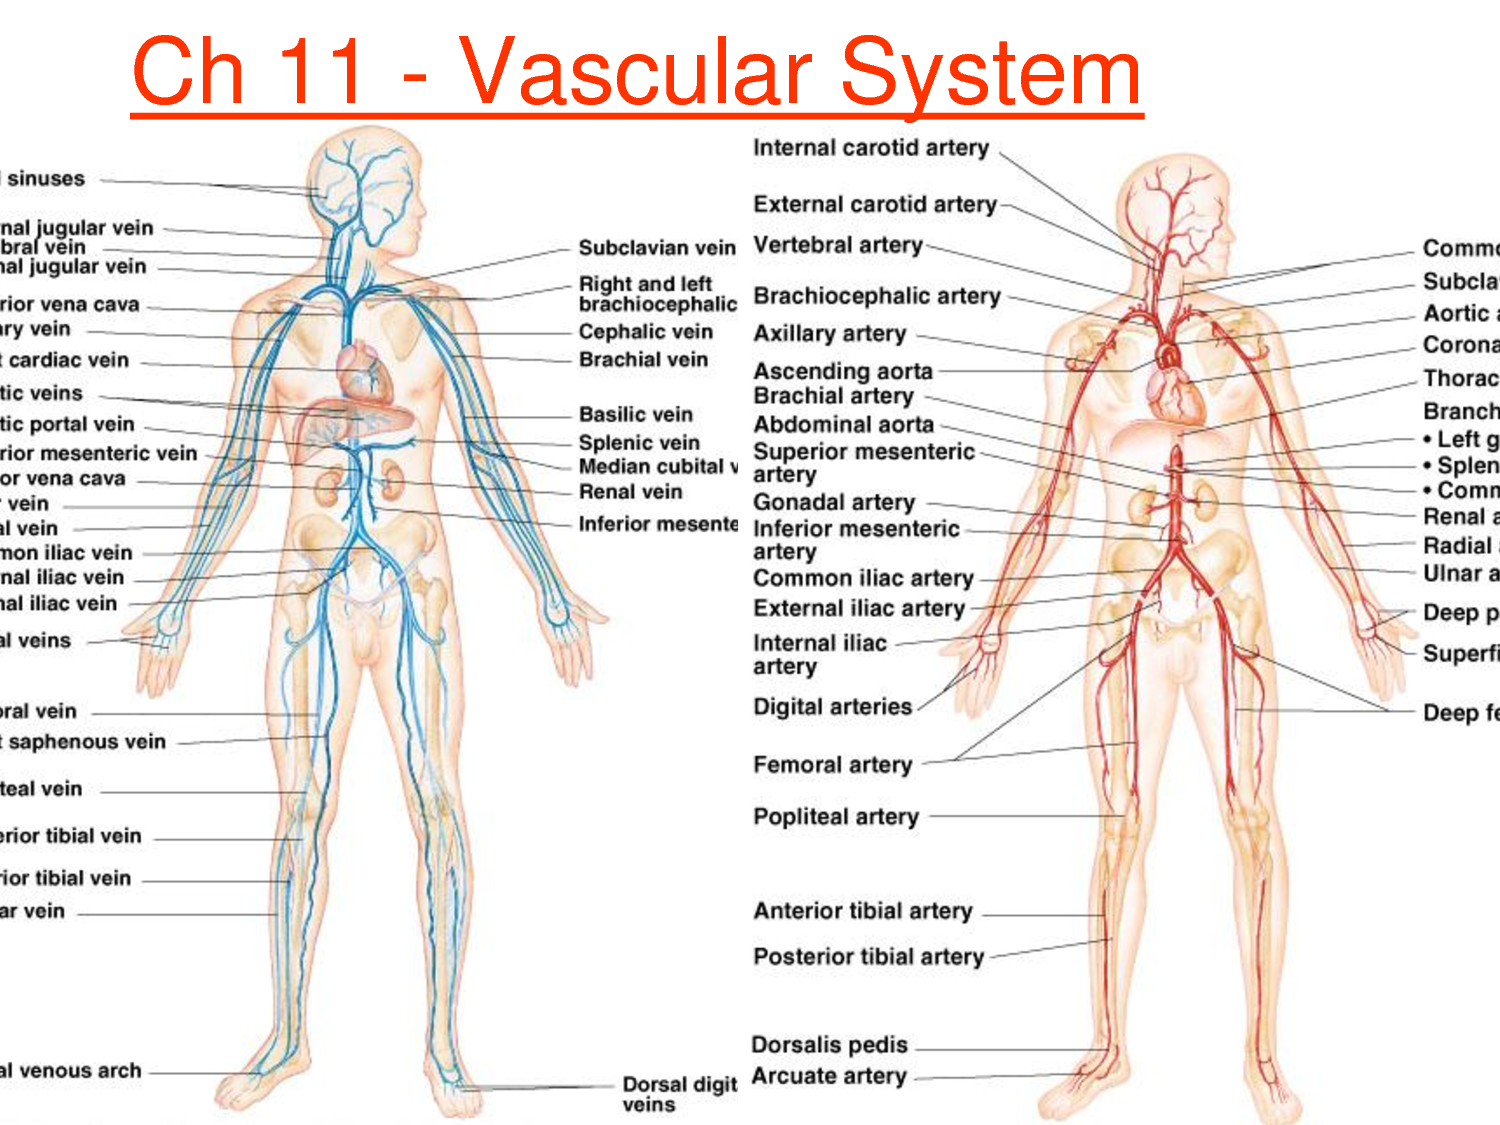 The human arterial and venous system